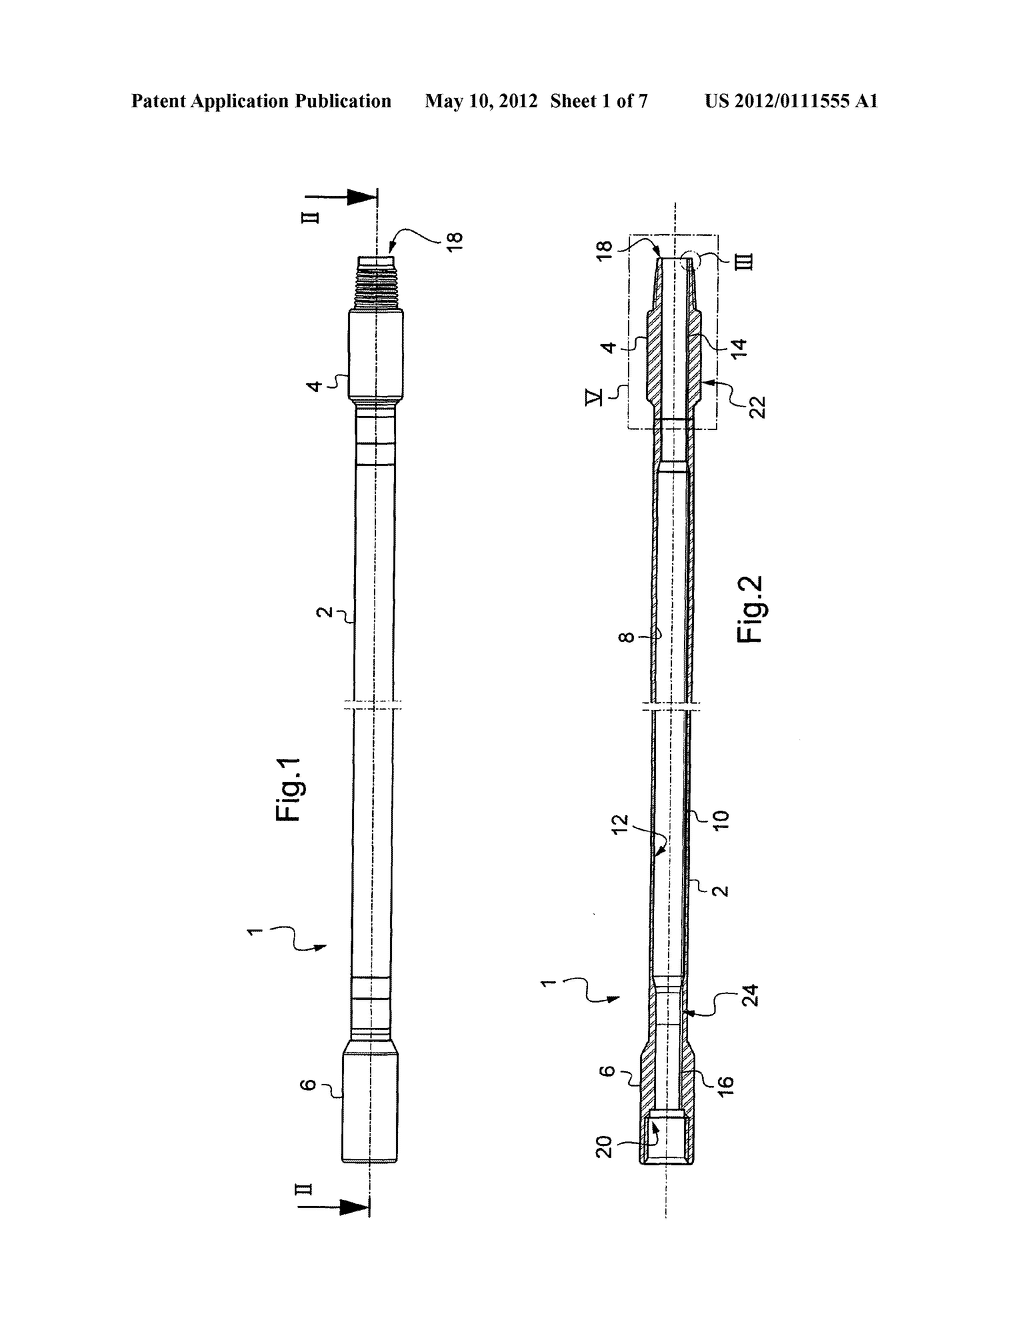 wired drill pipe improved configuration diagram schematic wired drill pipe improved configuration diagram schematic and image 02